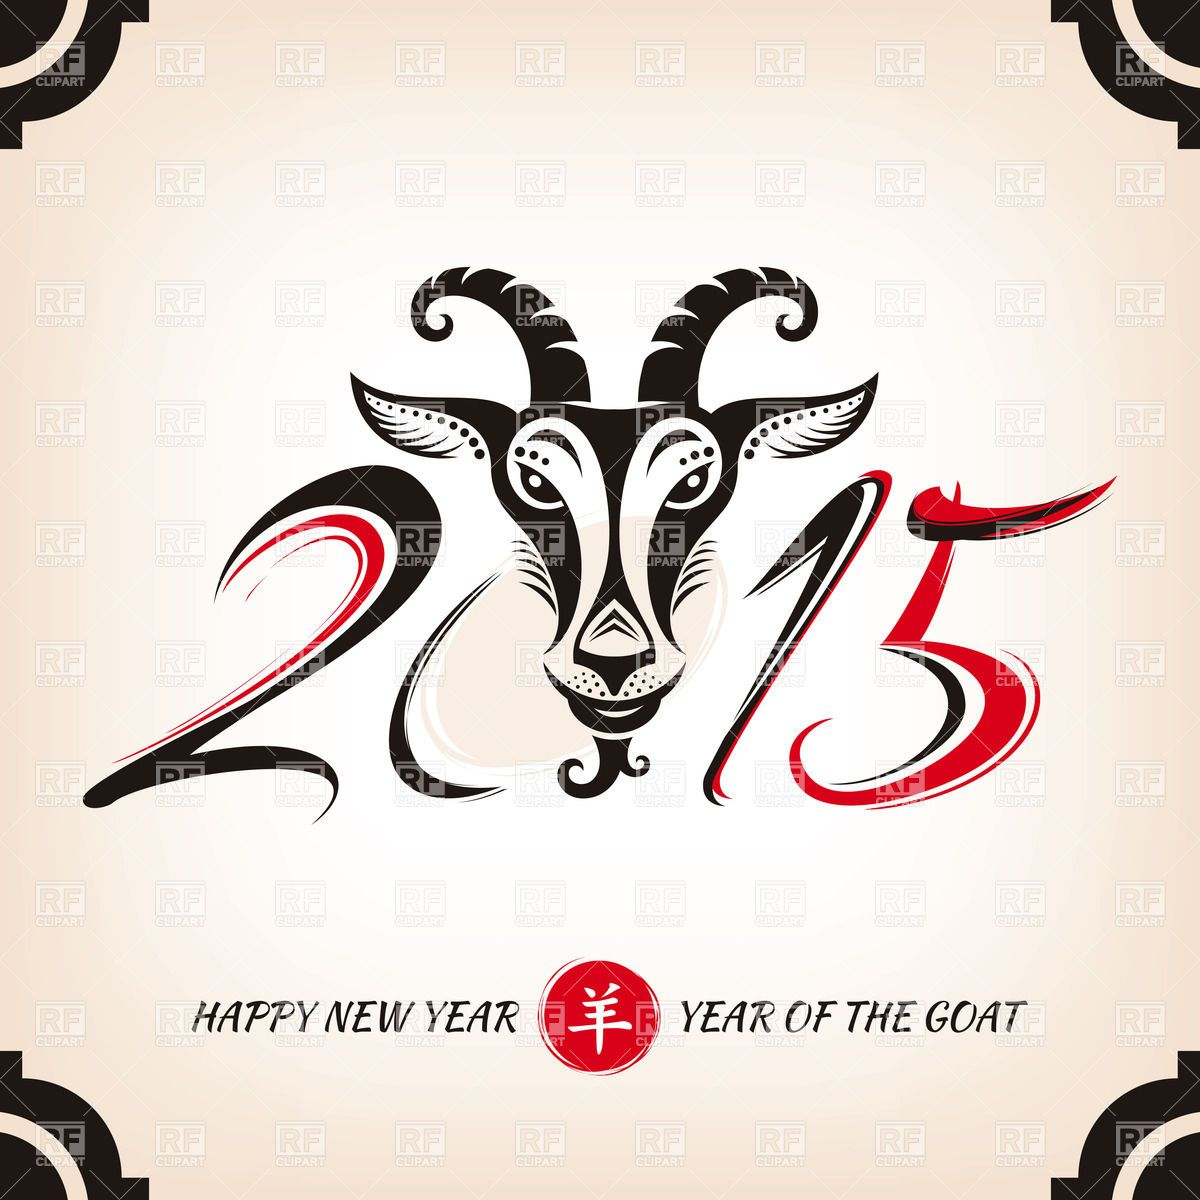 creative chinese new year greeting card ideas 2015 with goat download royalty free - Chinese New Year 2015 Animal